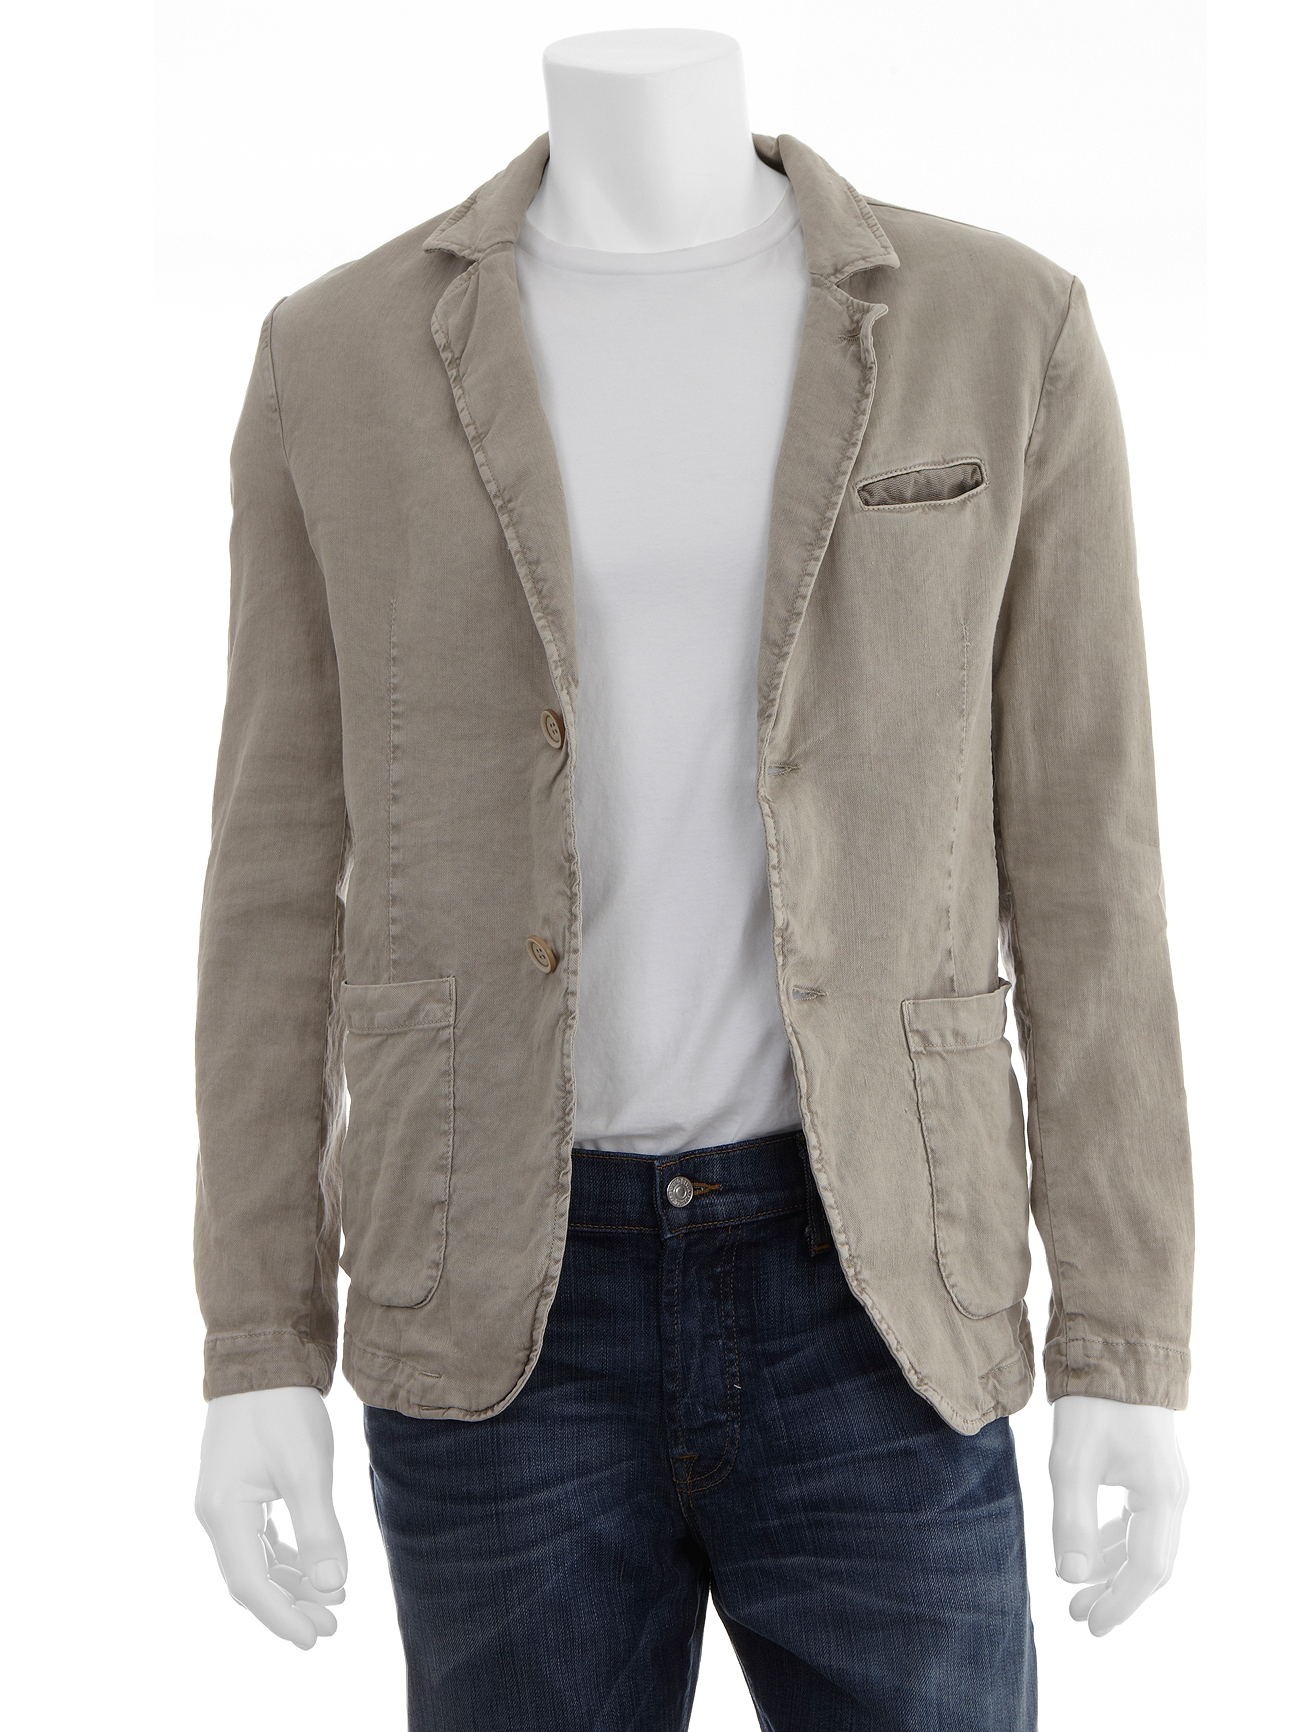 Casual Linen Suits Men Can Love MensUSA is an acclaimed online retailer that provides shoppers with plentiful choices in linen suits for men. If you're the type of person who enjoys wearing comfortable suits that are breathable and cool, linen suits may be exactly what your closet requires.